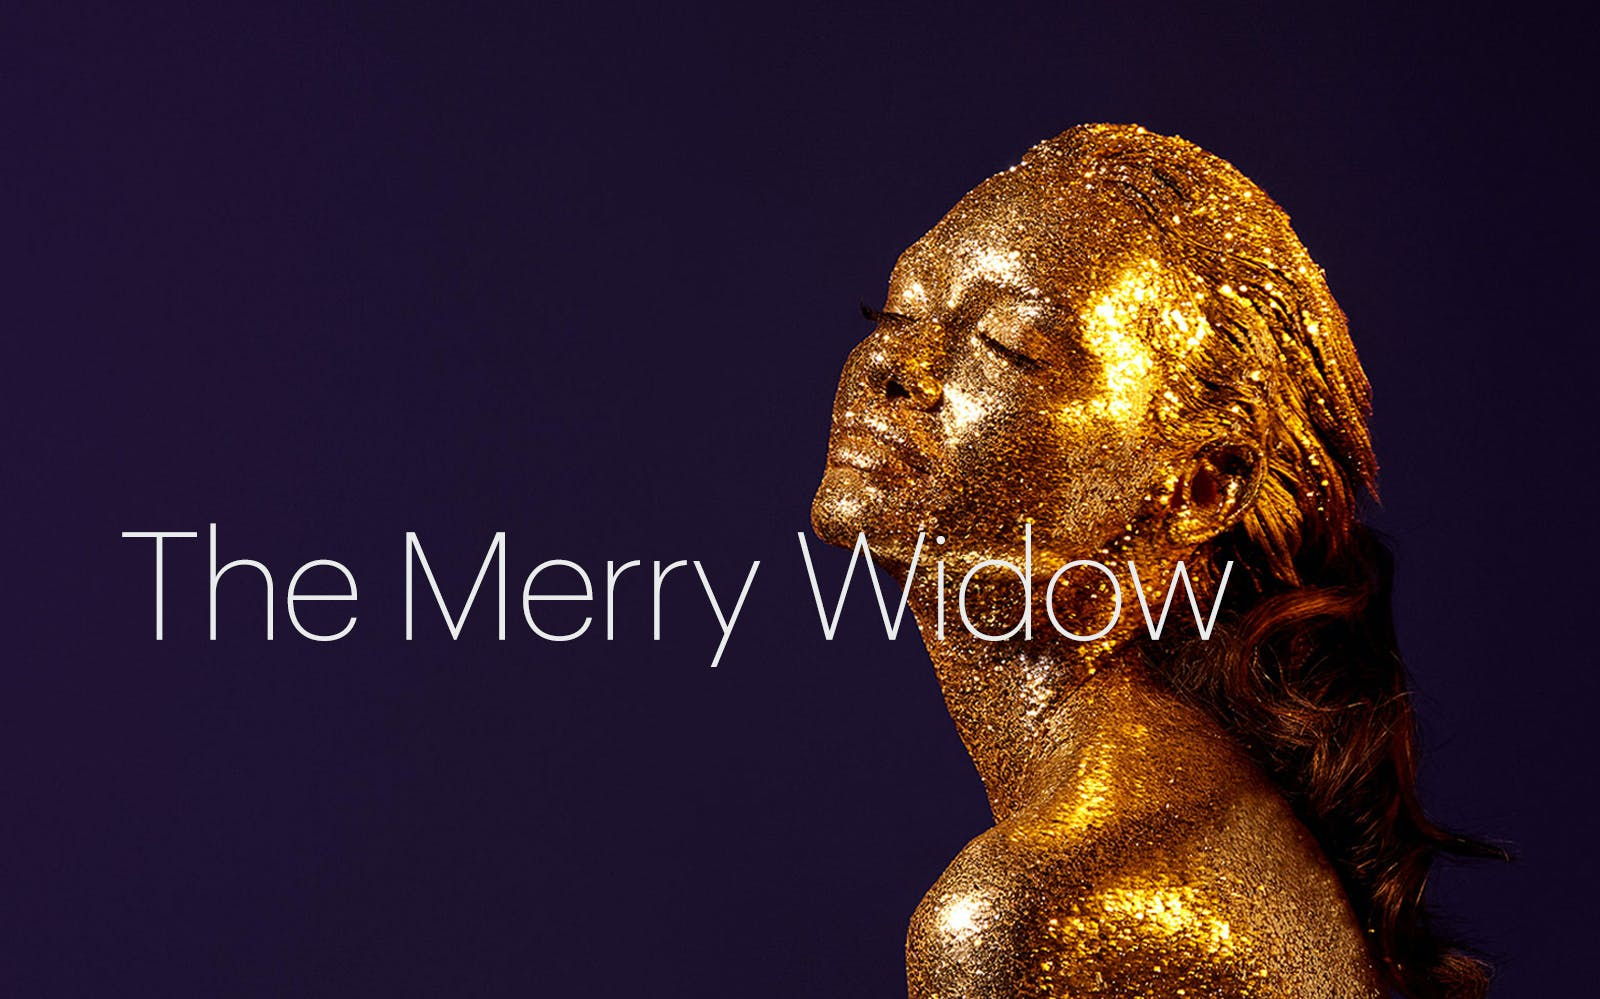 Best west end Shows The Merry Widow